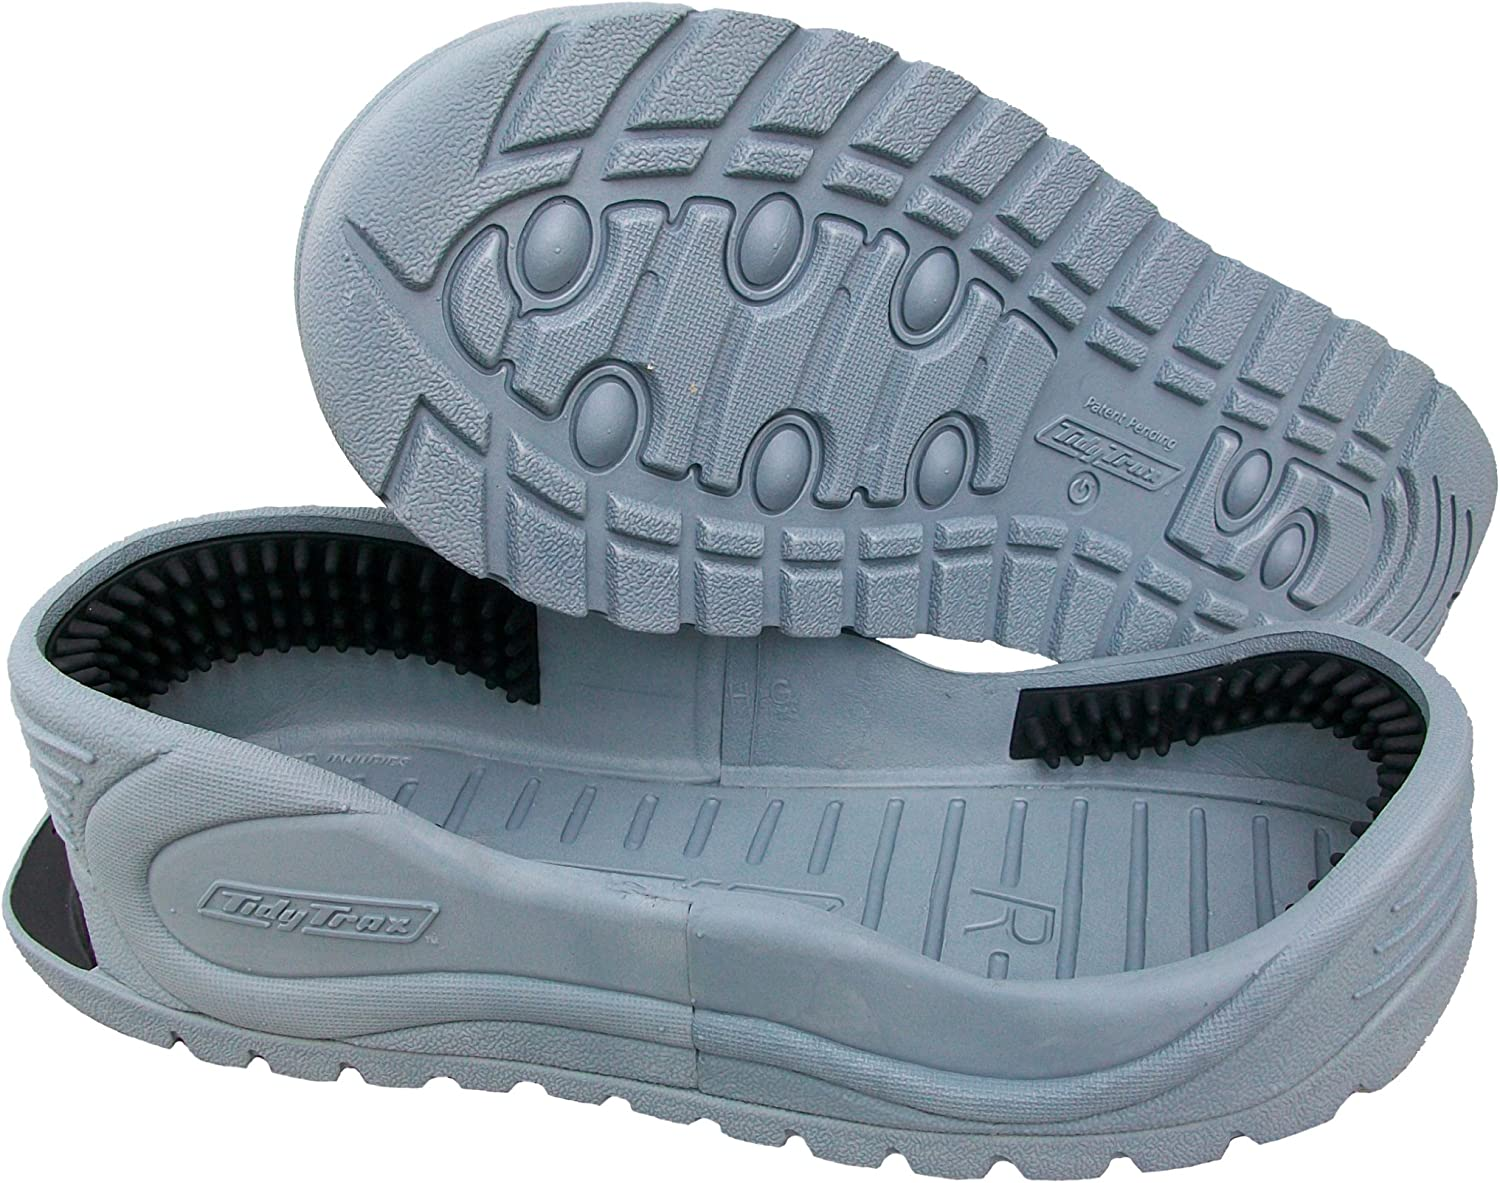 Tidy Trax M Hands Free Shoe Covers , Size M,GREY